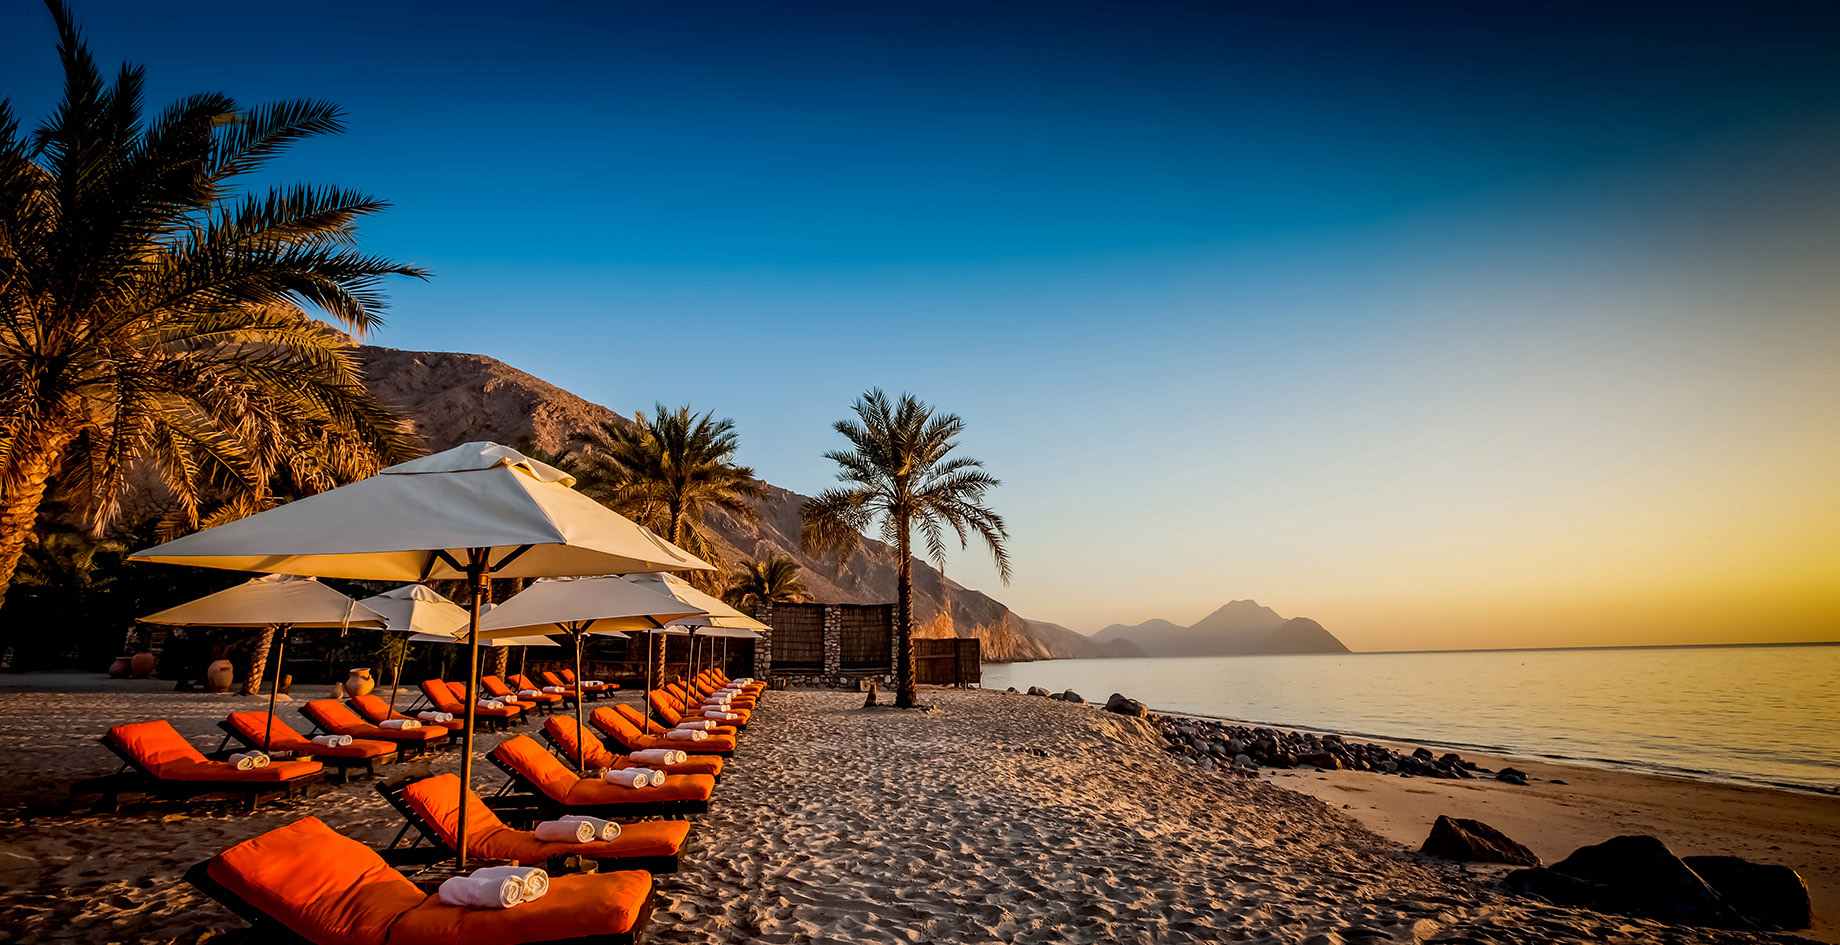 Best Island Beaches For Partying Mykonos St Barts: Top 10 Beautiful Beaches To Visit This Winter